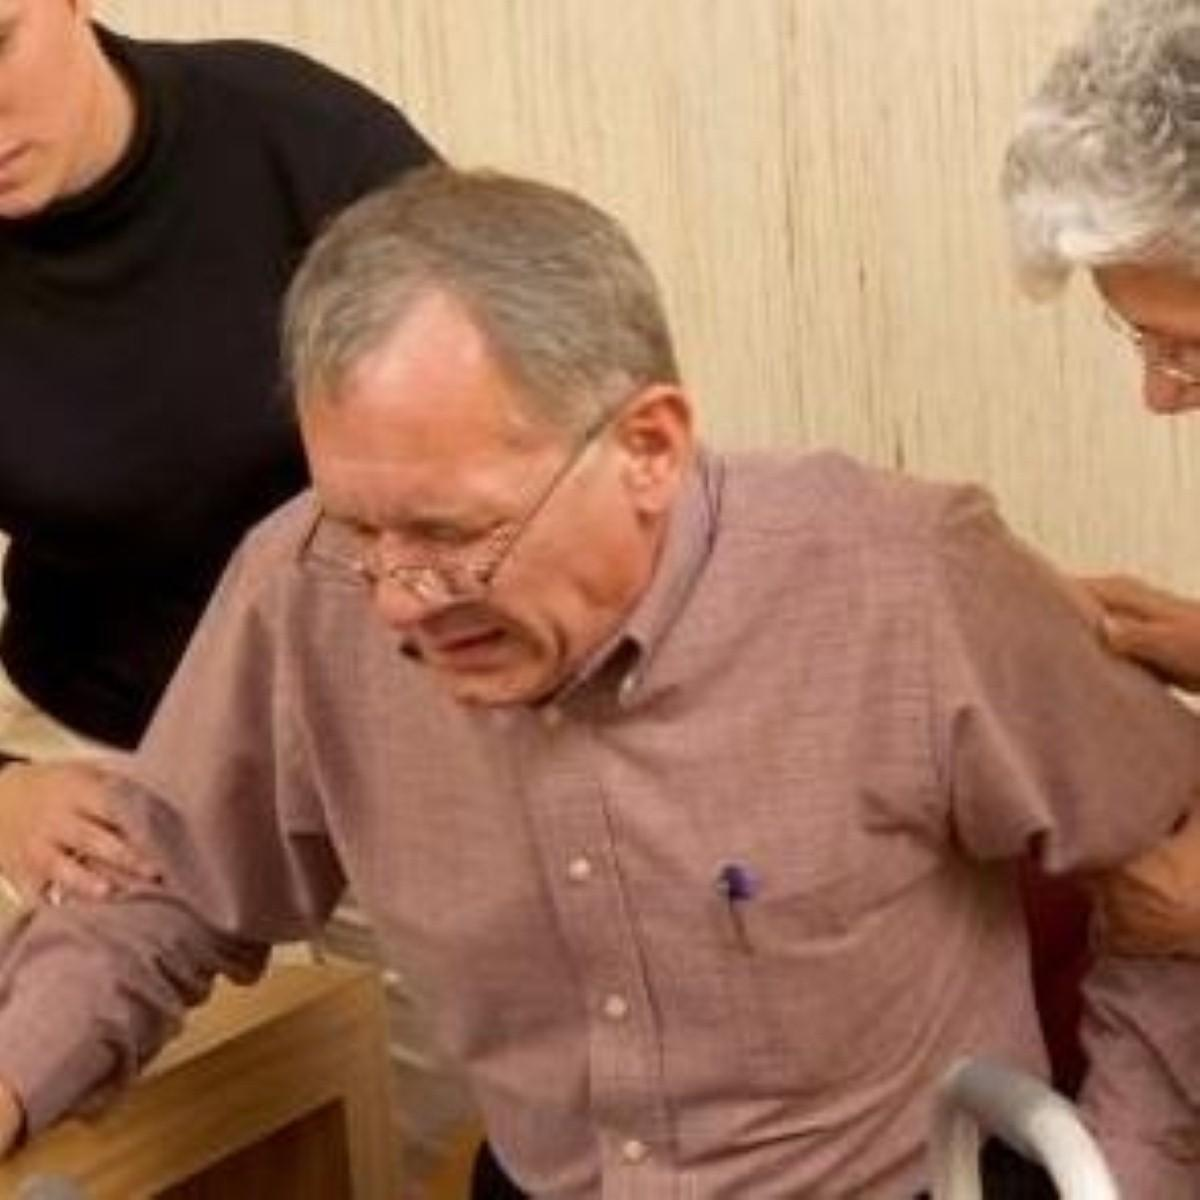 Dementia care 'will be a top priority for Scotland'